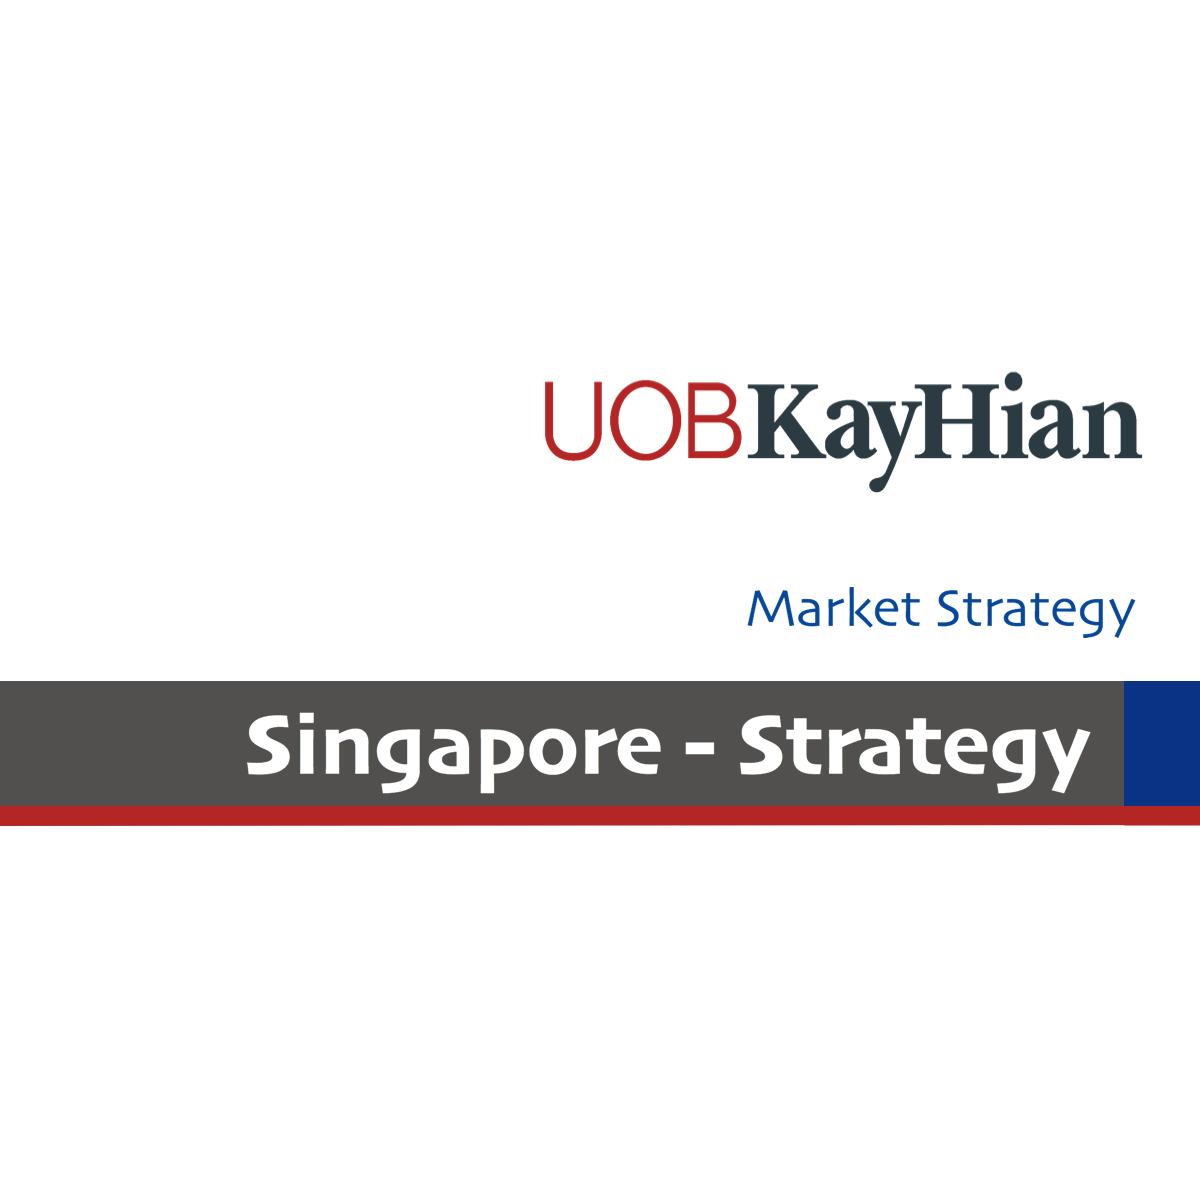 Singapore Strategy - UOB Kay Hian Research | SGinvestors.io